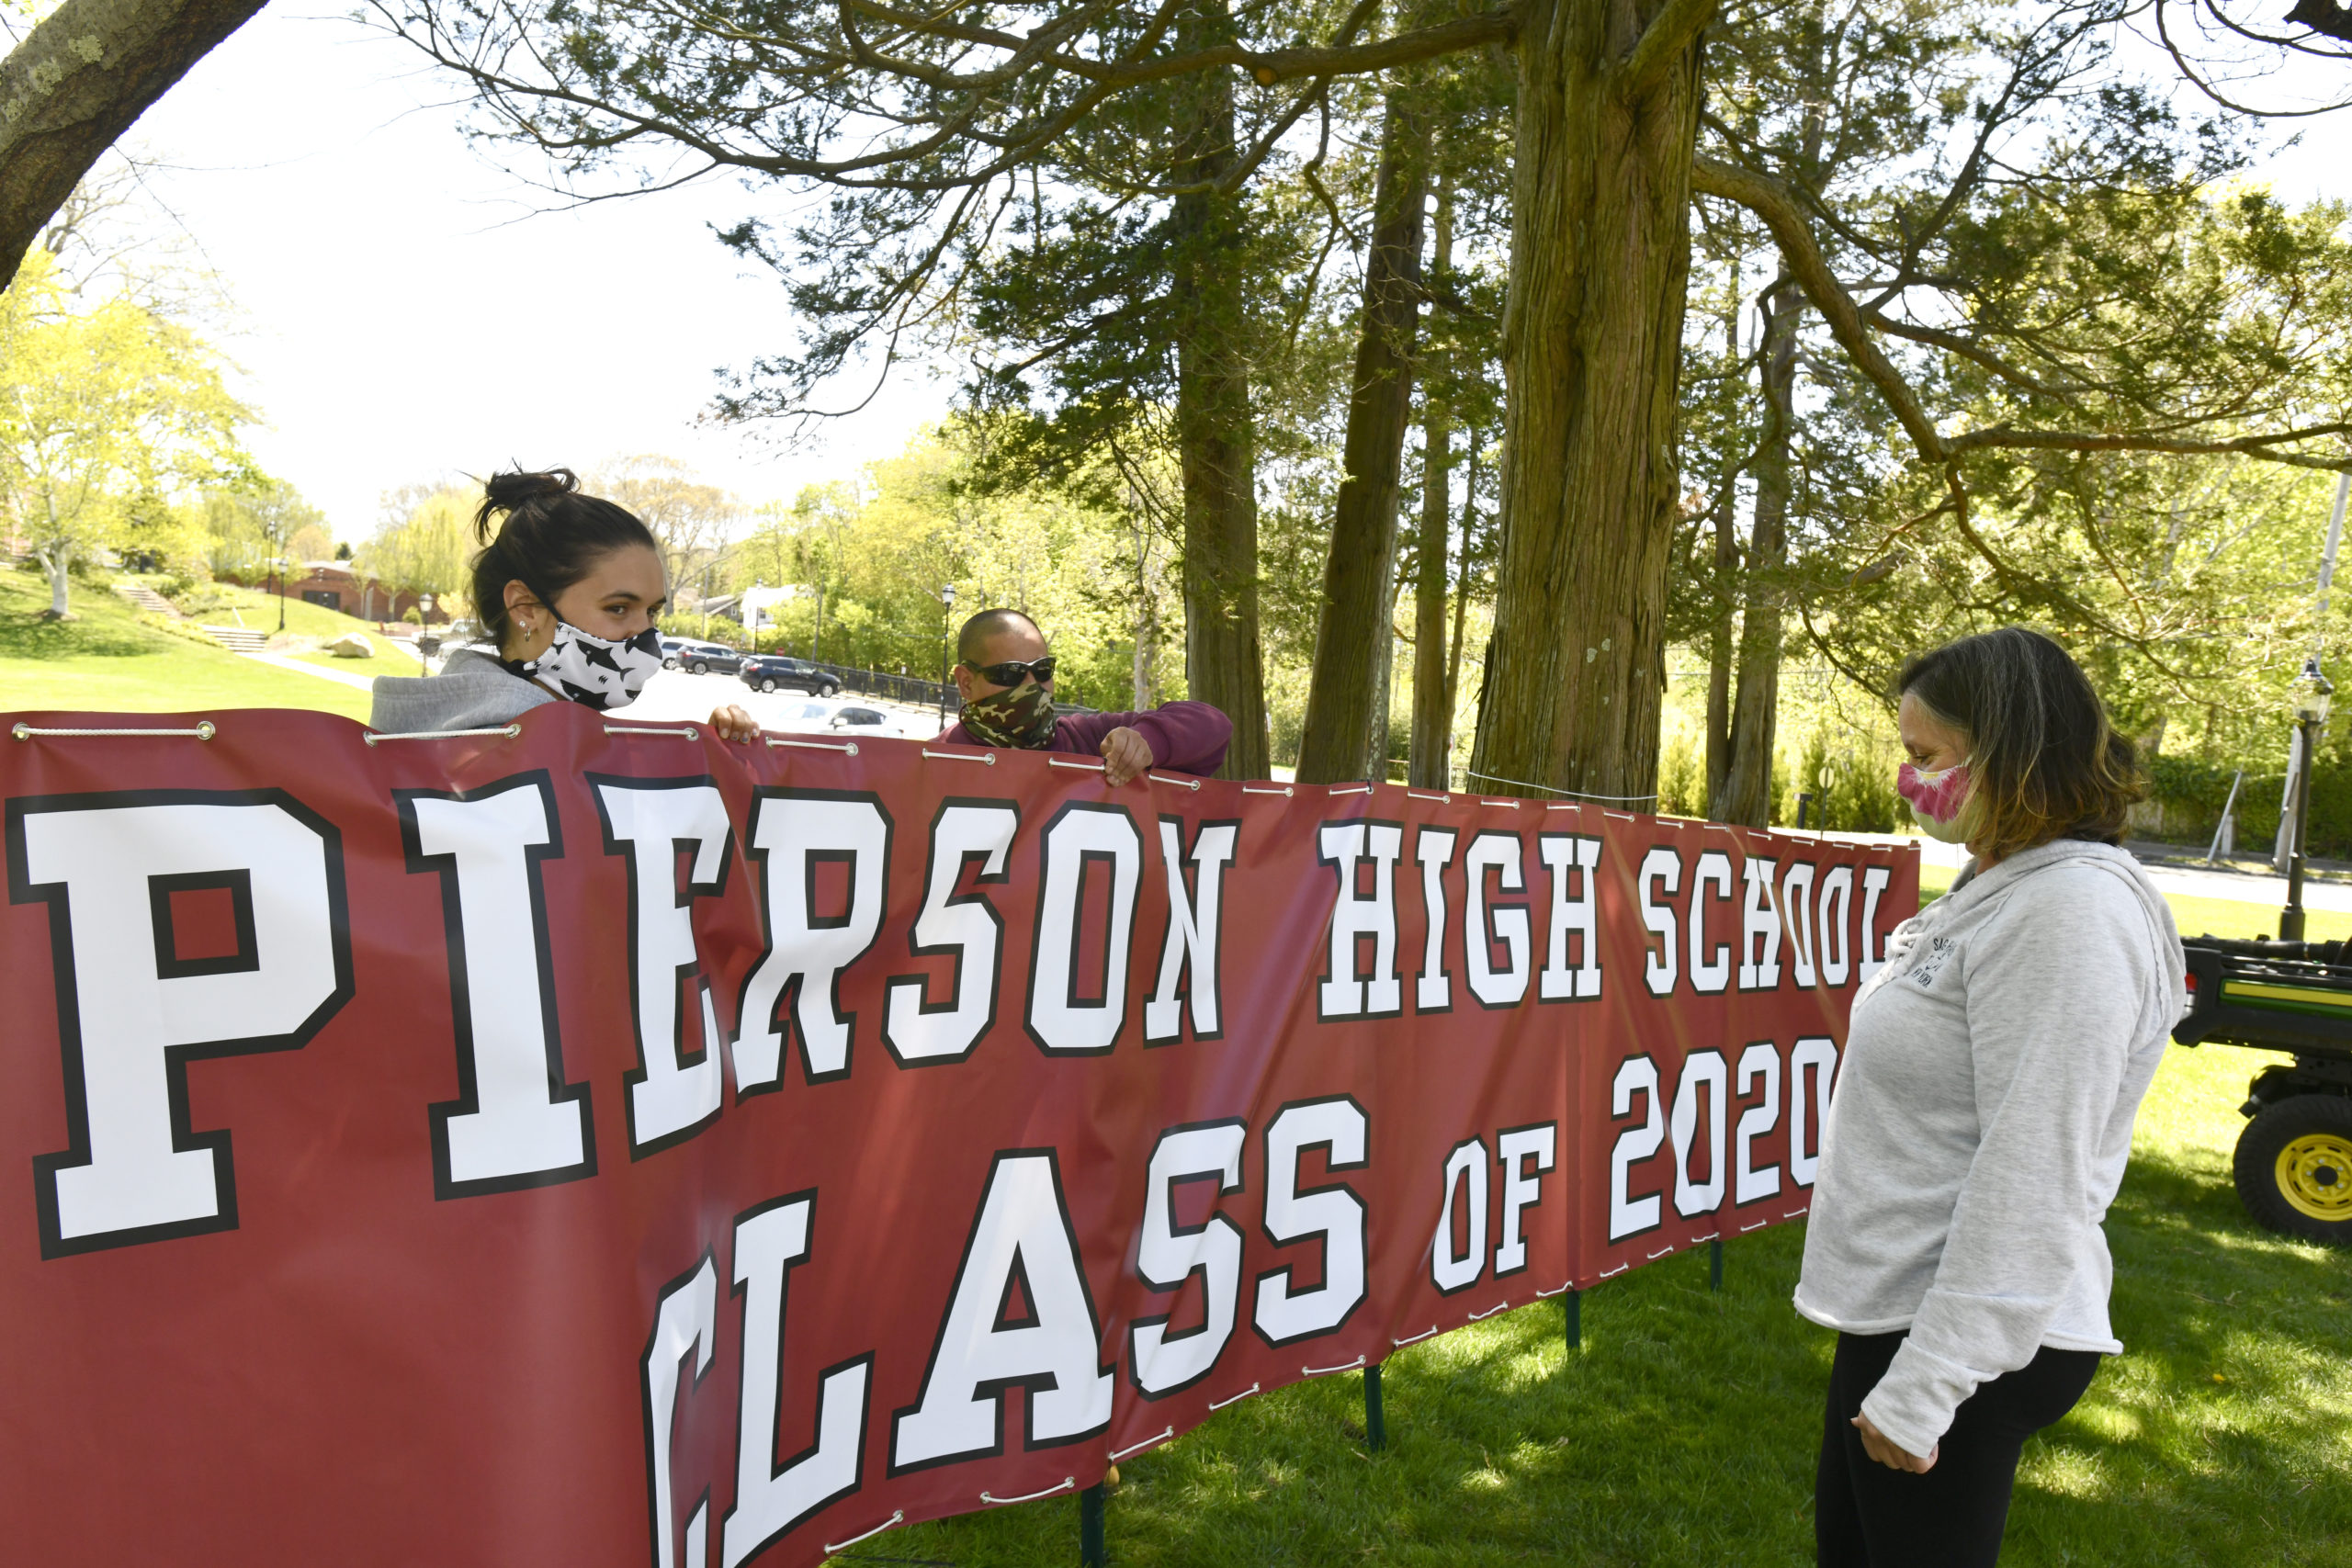 Photos of 2020 graduates were recently set up on Pierson hill in Sag Harbor.